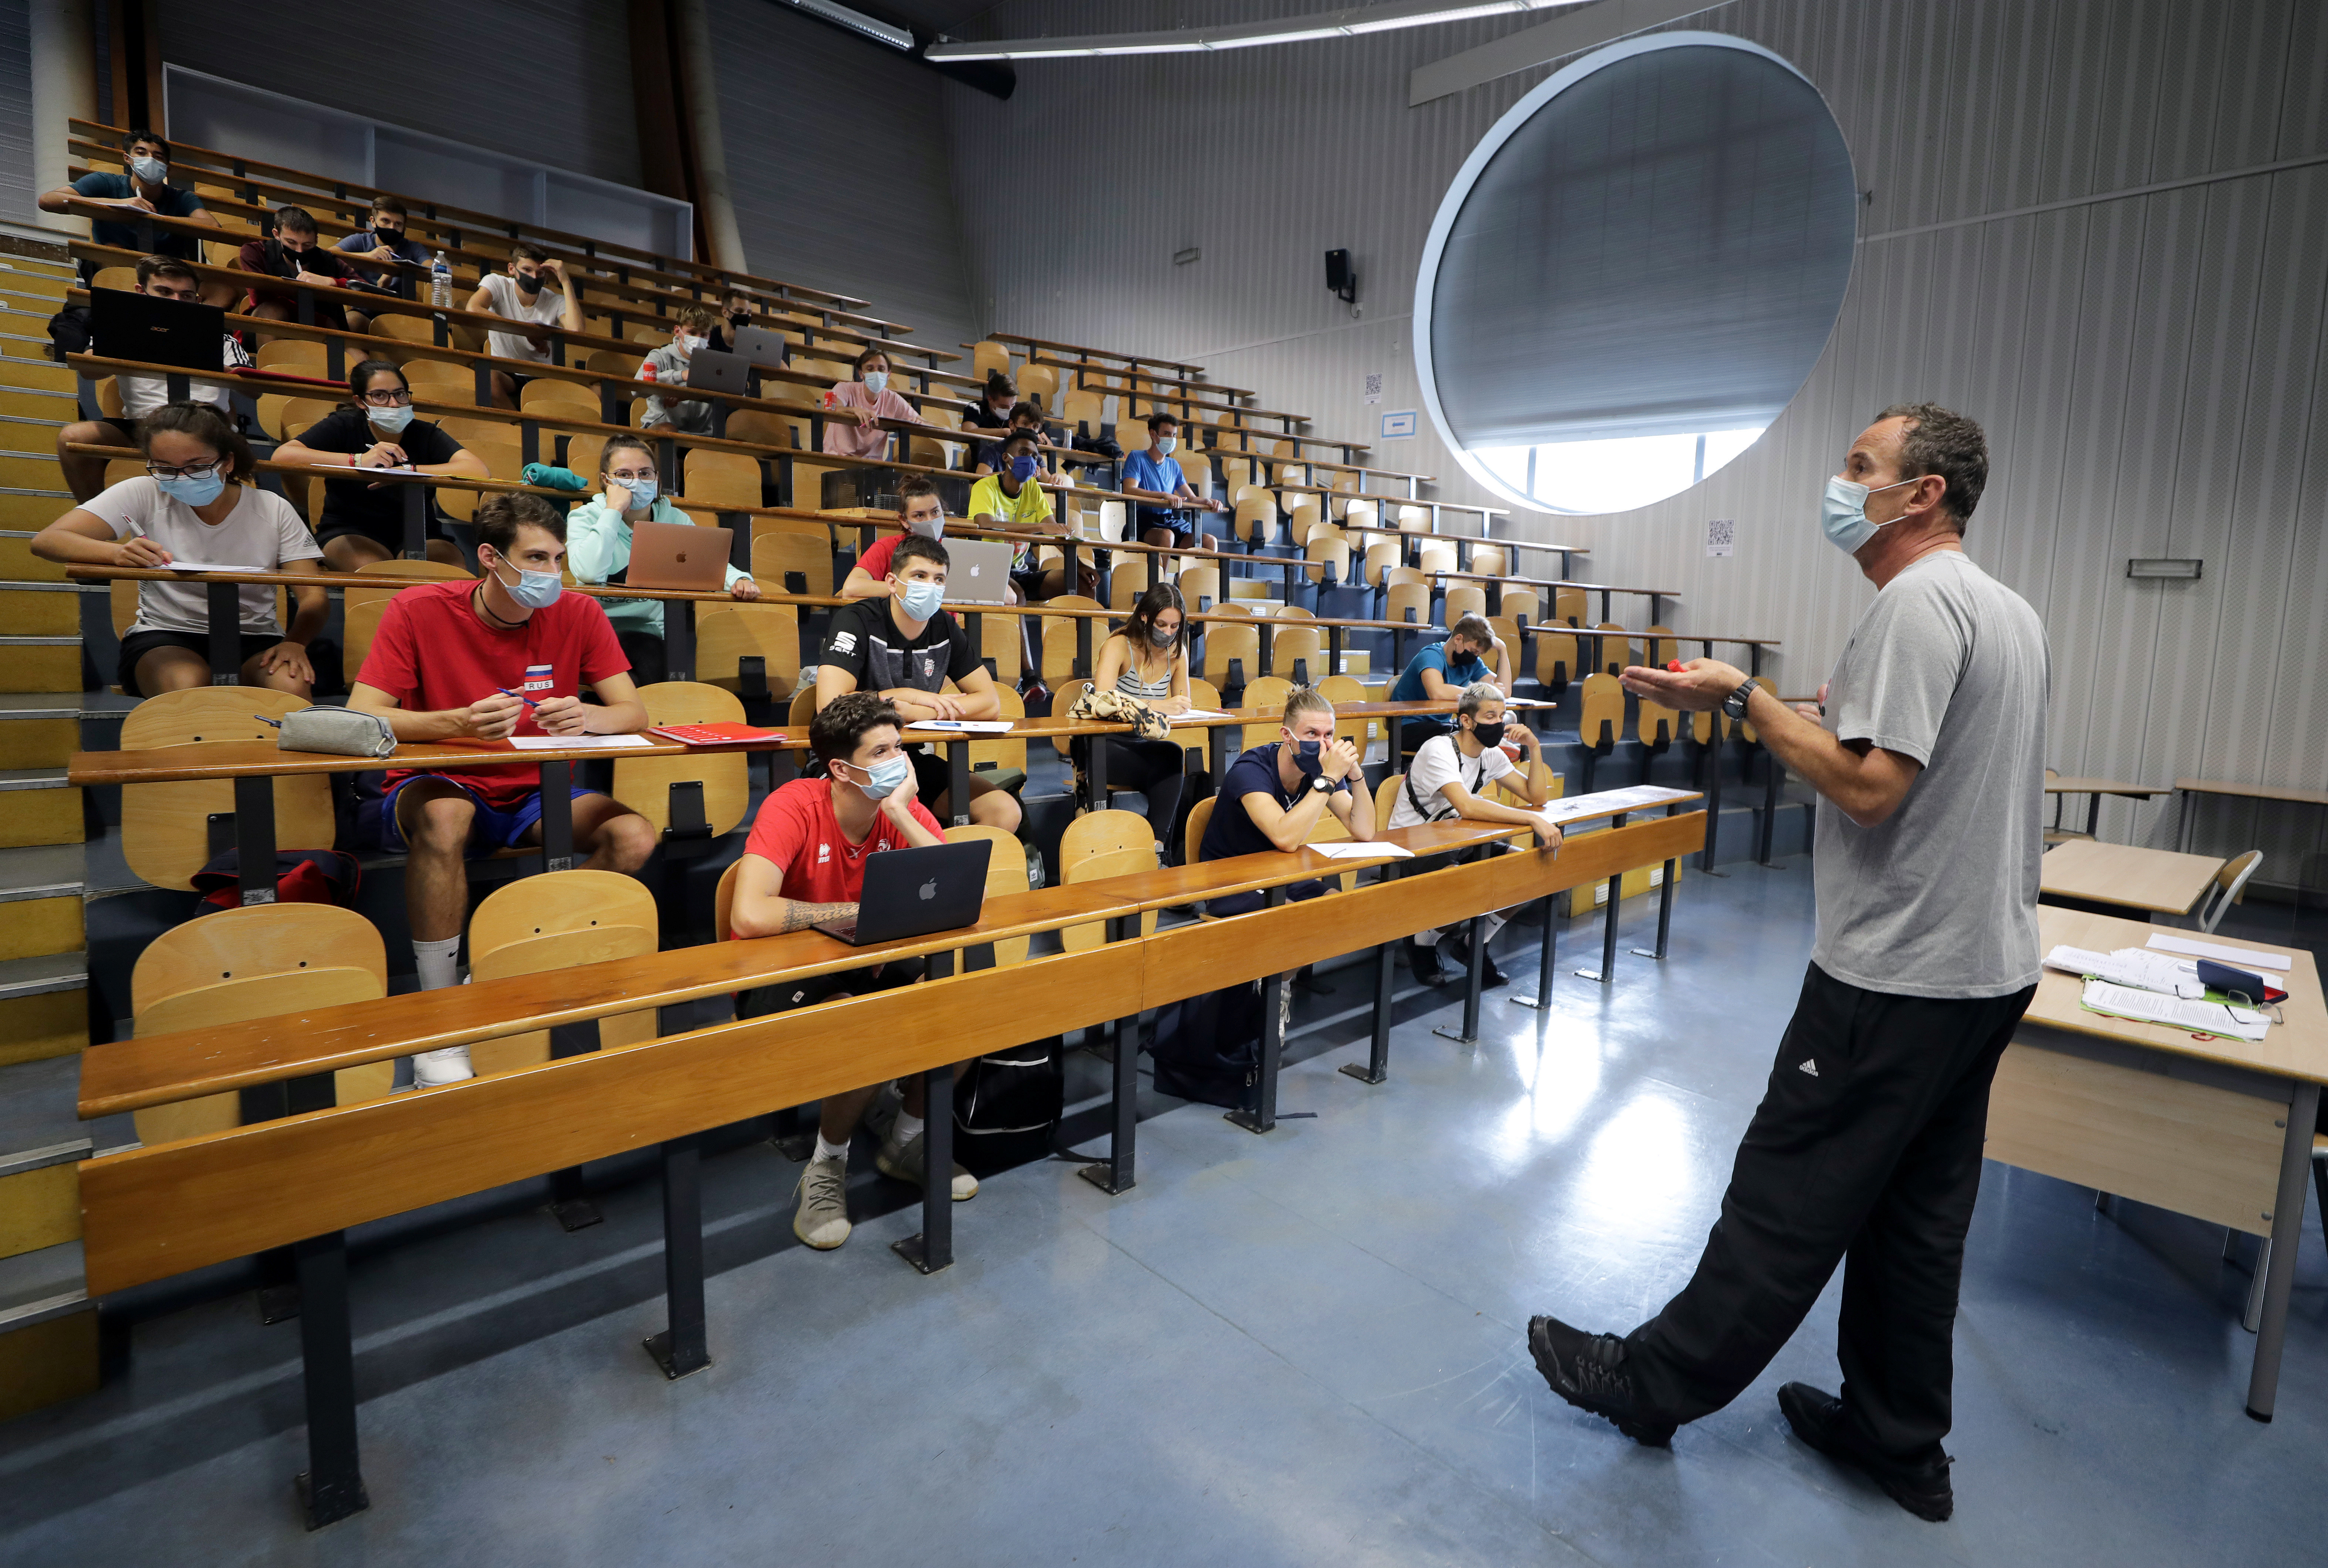 Students of the faculty of sport sciences at Universite Cote d'Azur wearing protective masks to avoid the spread of the coronavirus disease (COVID-19), attend a class in an auditorium, as French universities struggle to contain outbreaks at the beginning of the school year in Nice, France, September 24, 2020.  Picture taken  September 24, 2020.    REUTERS/Eric Gaillard - RC219J9XLK2L